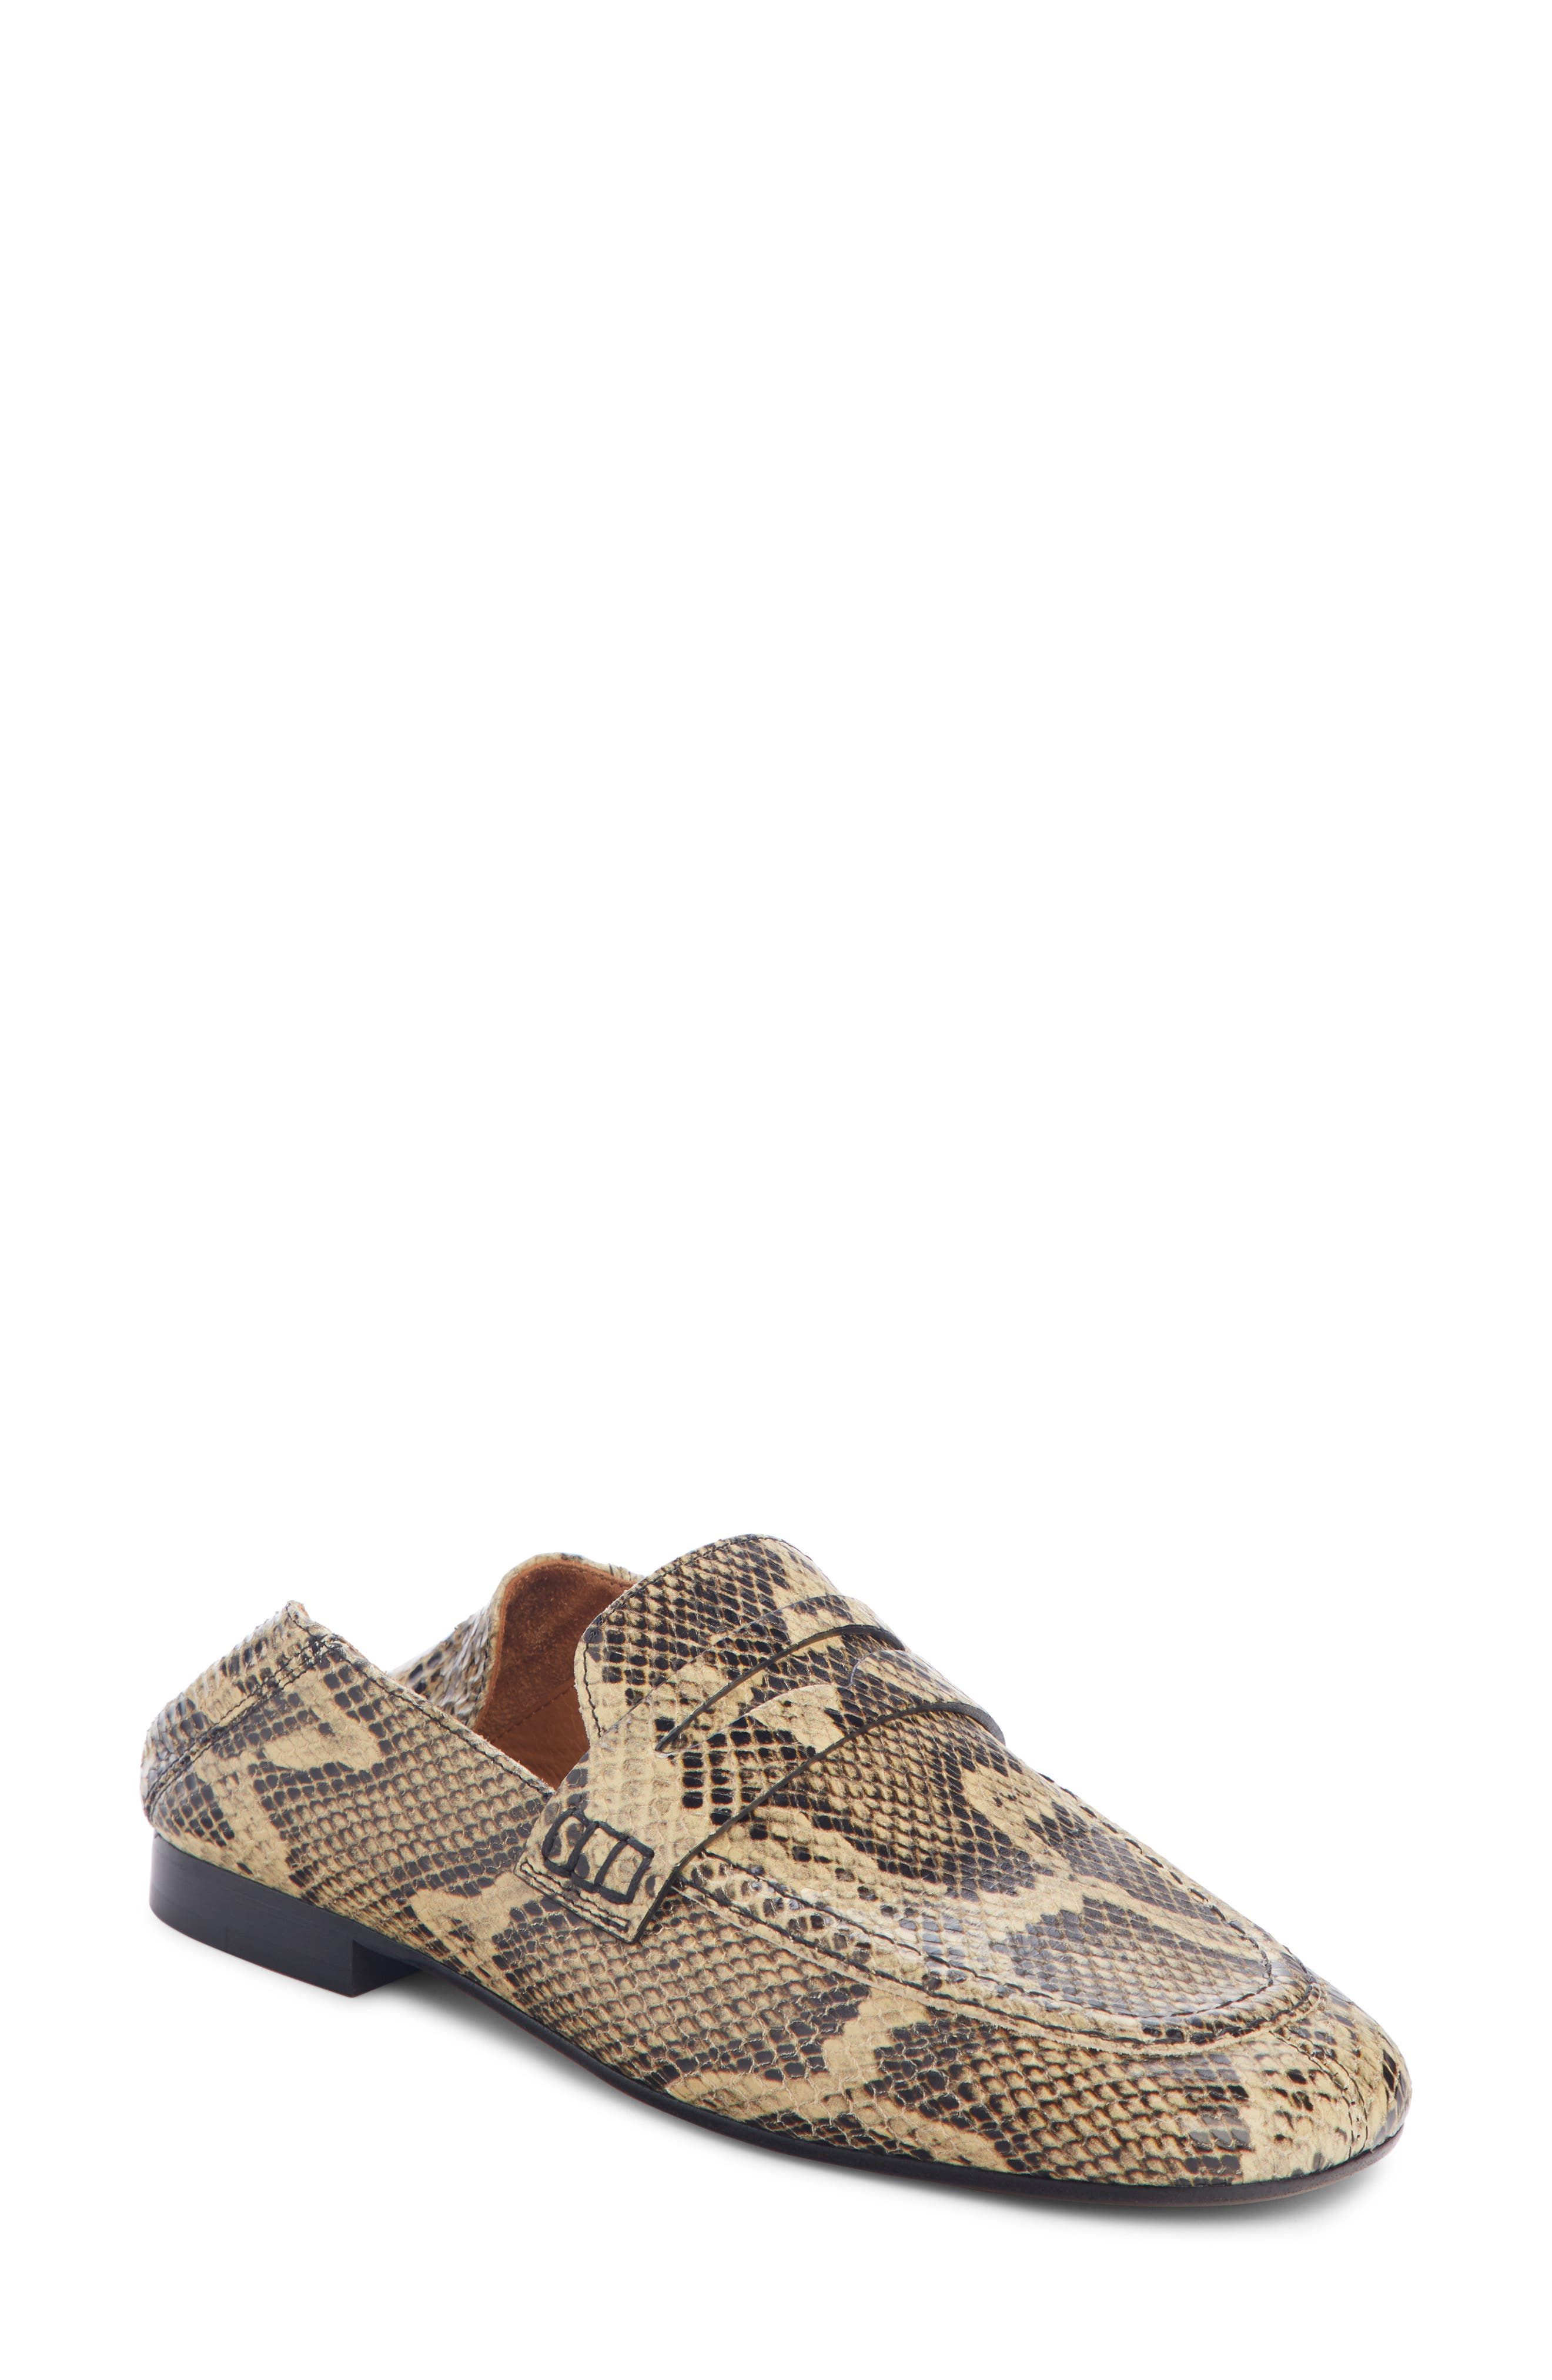 Fezzy Snakeskin Embossed Convertible Loafer,                             Main thumbnail 1, color,                             NATURAL EXOTIC